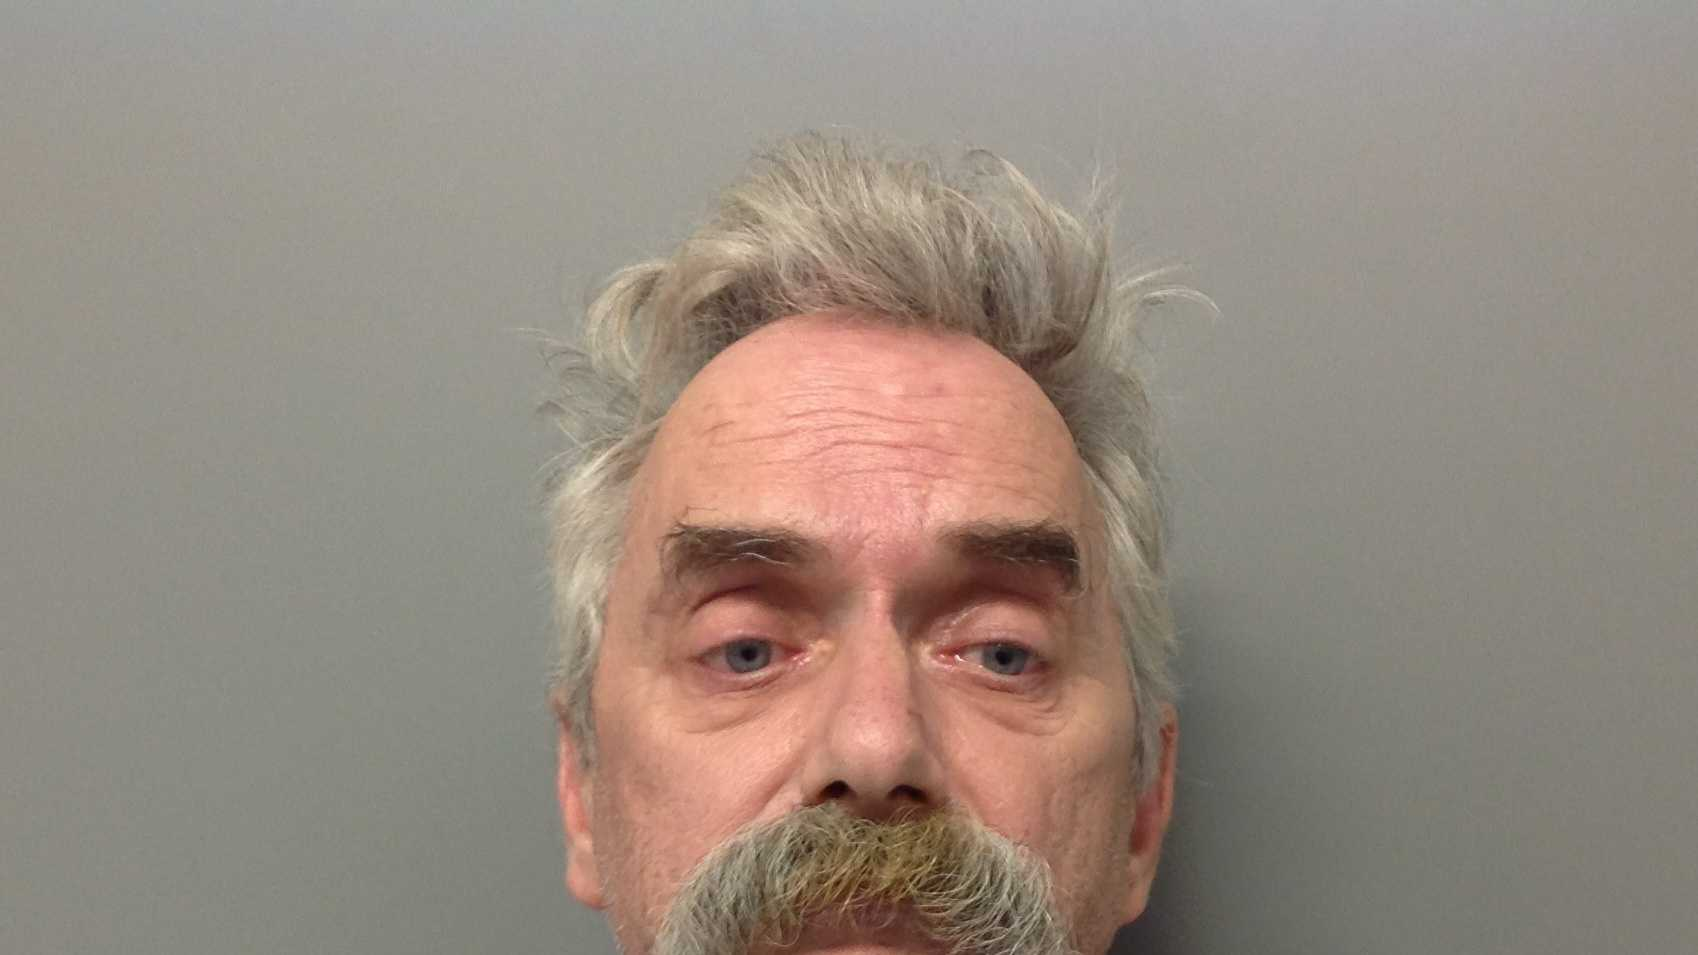 Ronald G. Charette is accused in a road rage incident in which ploce say he waved a loaded gun at another motorist.